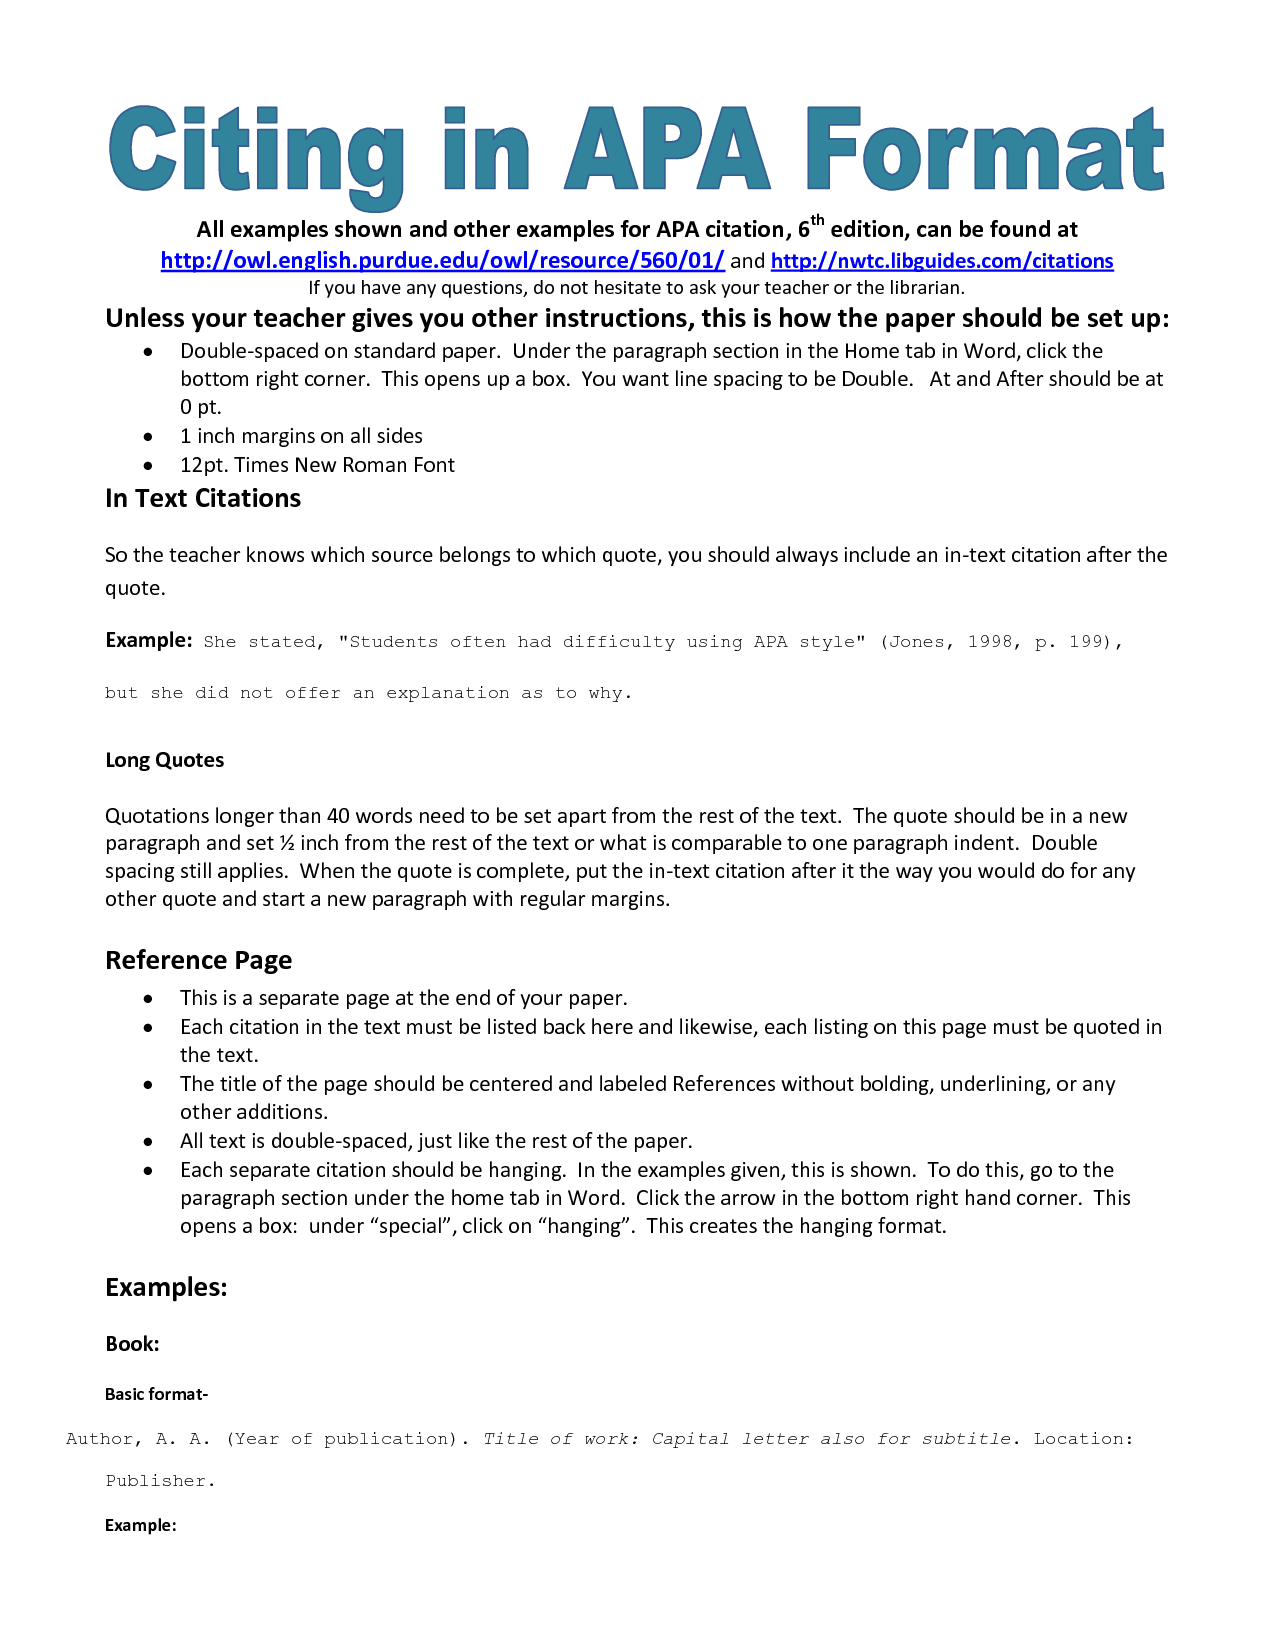 Life After High School Essay  Best Business School Essays also My School Essay In English Pin By Karen Sue Davis On Wgu  Apa Essay Apa Style Paper  Thesis Statement In An Essay